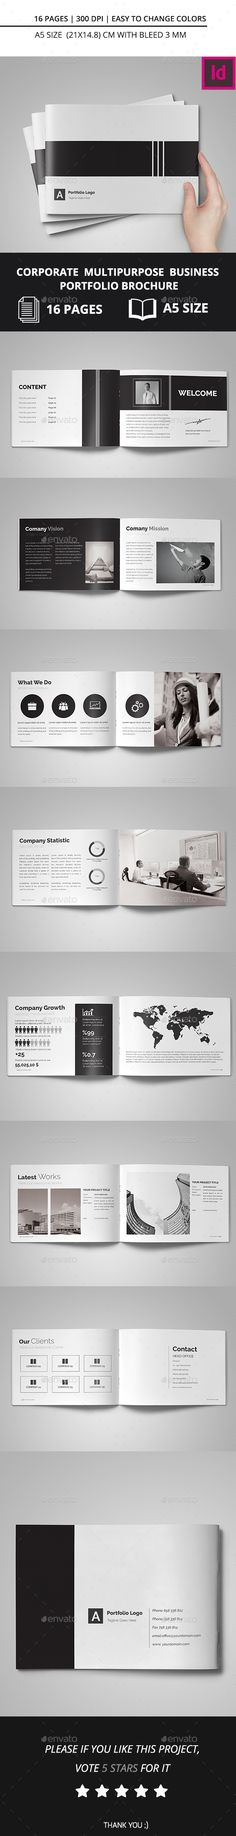 Corporate Multipurpose Business Portfolio Brochure Template InDesign INDD #design Download: http://graphicriver.net/item/corporate-multipurpose-business-portfolio-brochure/14059216?ref=ksioks